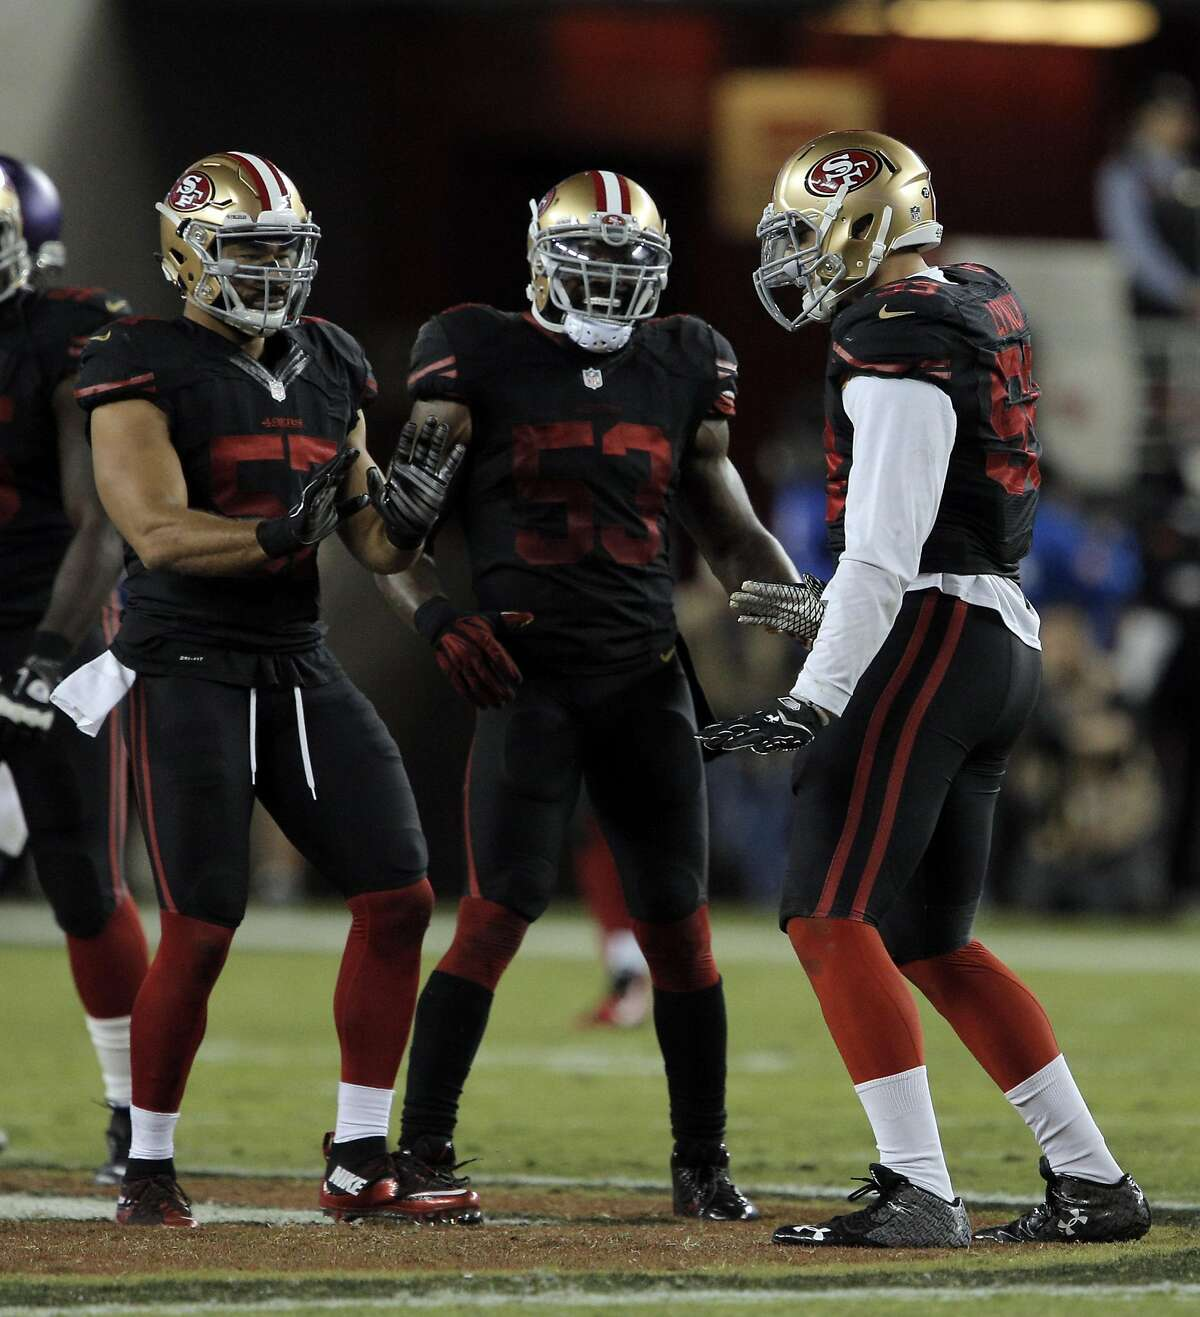 Michael Wilhoite (57), NaVorro Bowman (53) and Aaron Lynch (59) celebrate Lynch's fourth quarter sack of Teddy Bridgewater during the 49ers game against the Minnesota Vikings at Levi's Stadium in Santa Clara, Calif., on Monday, September 14, 2015.